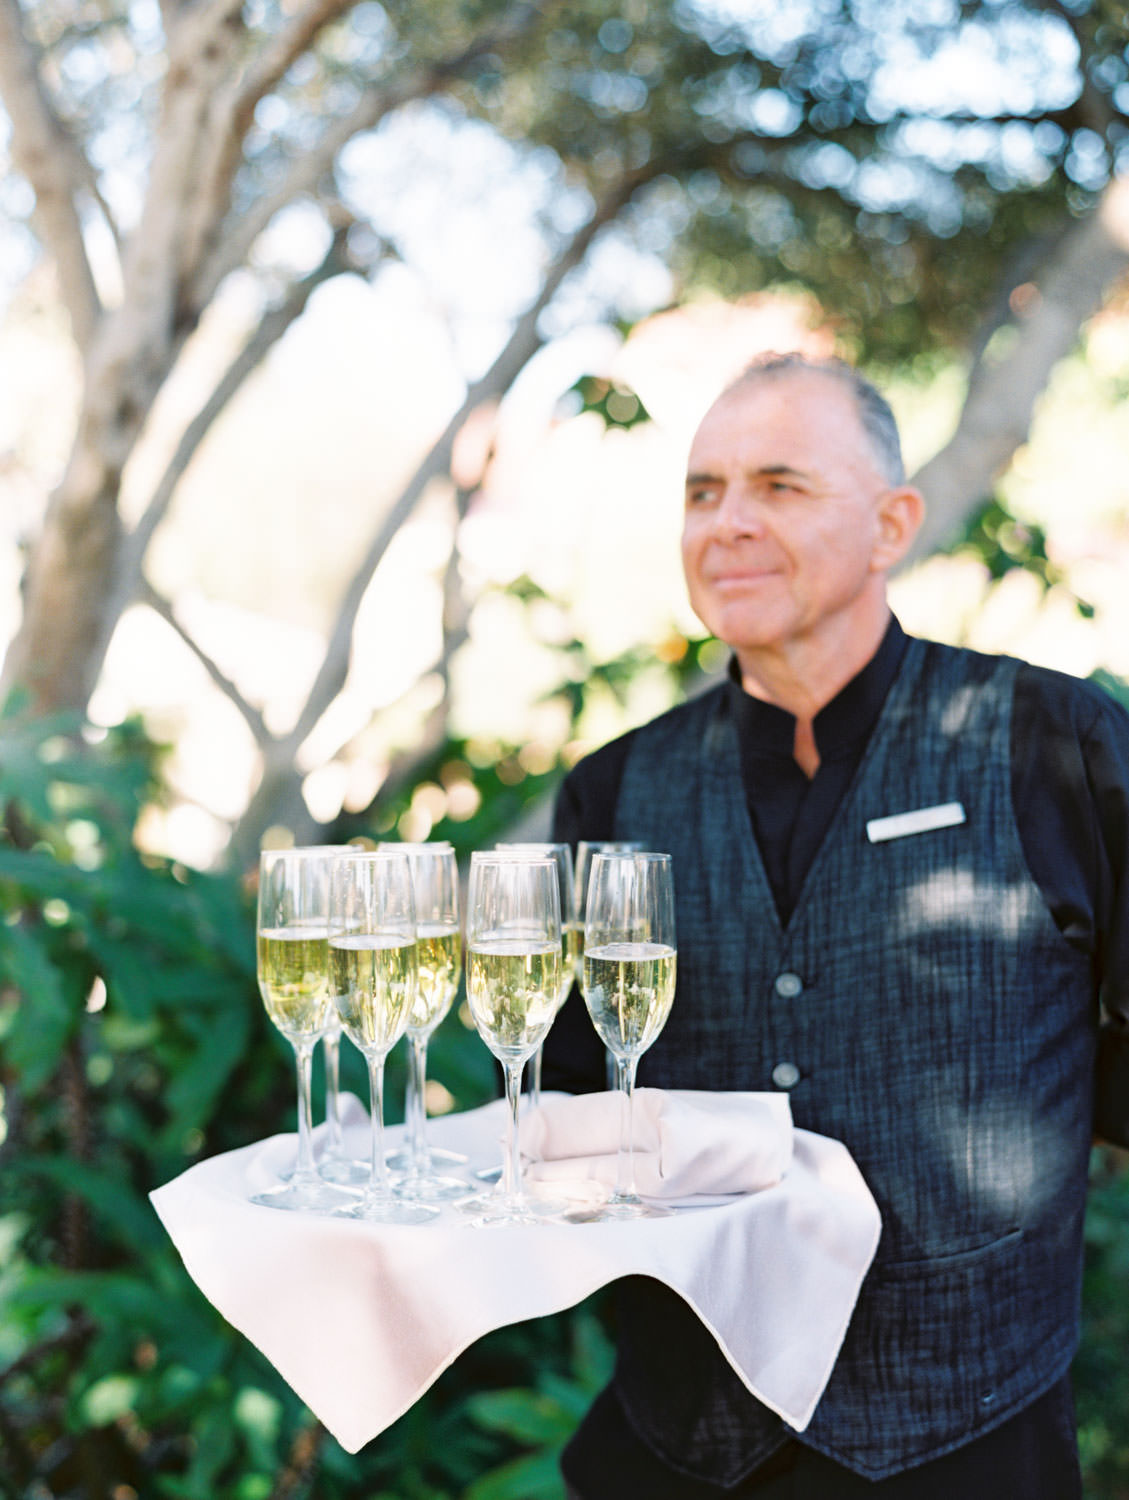 Tray pass champagne glasses before the ceremony. La Jolla wedding shot on film by Cavin Elizabeth Photography